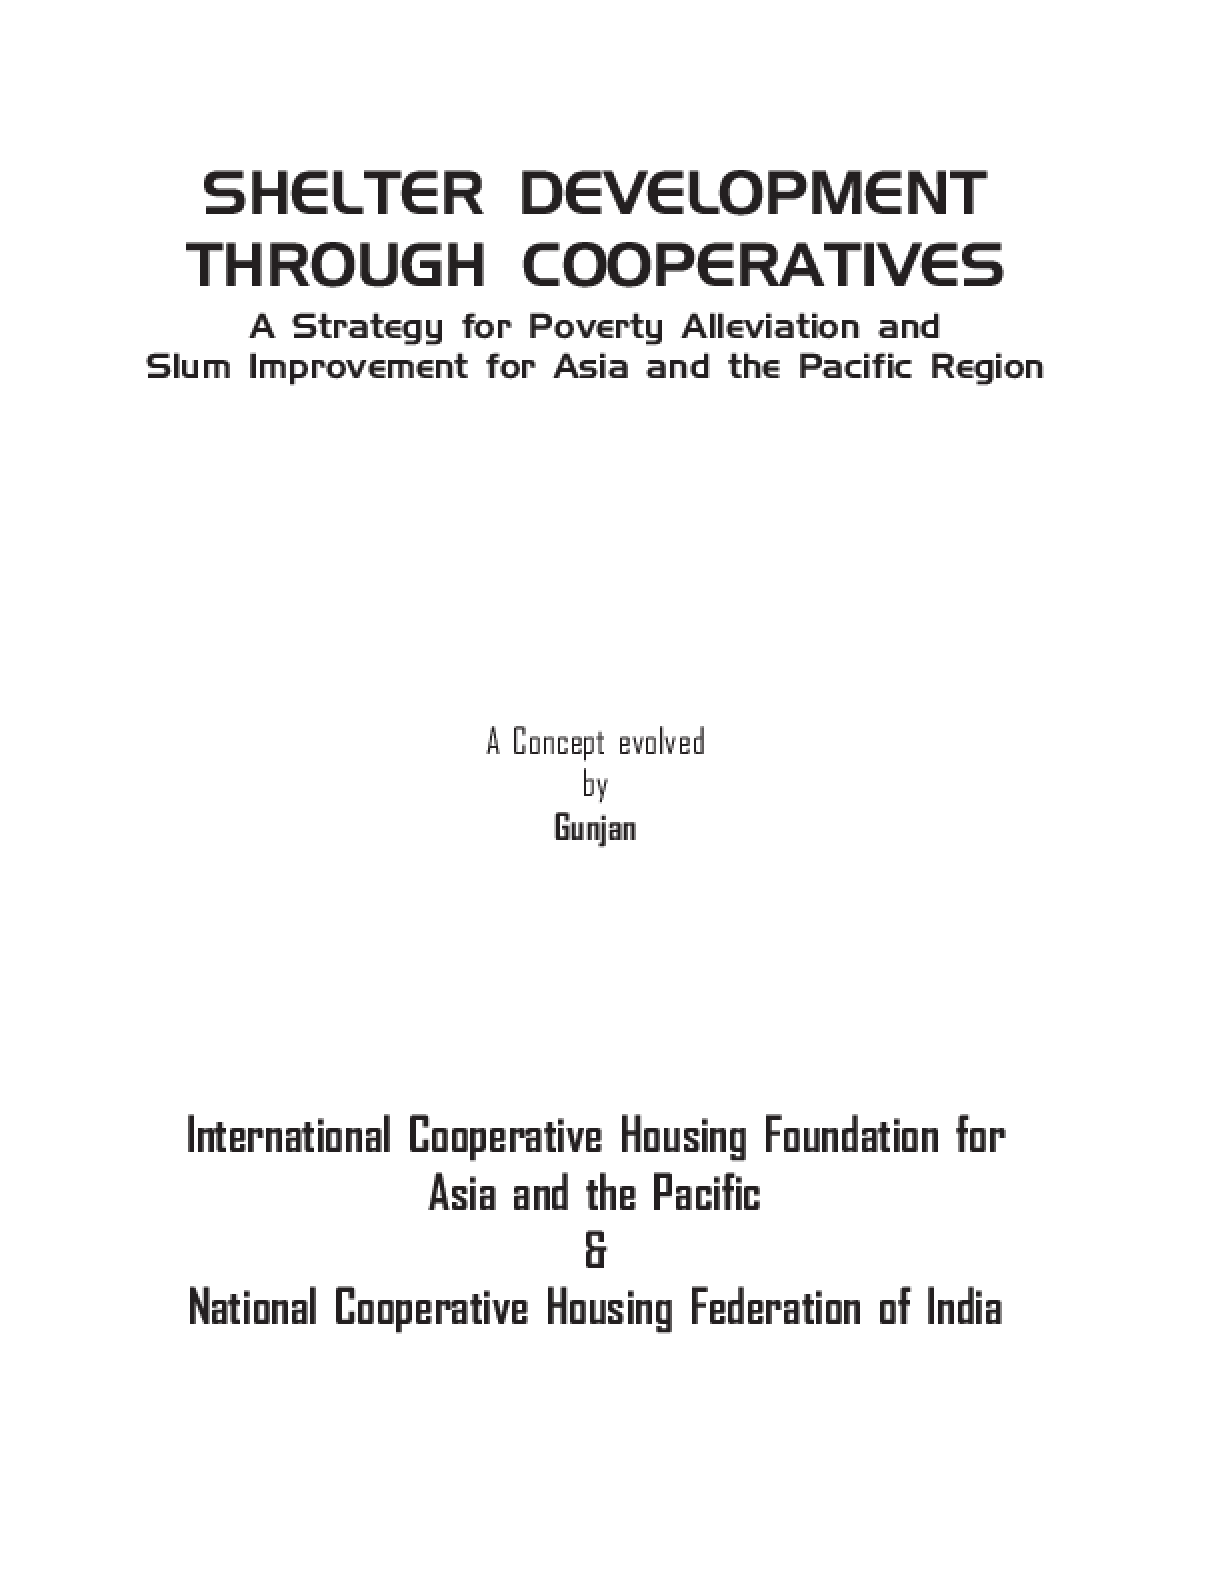 Shelter Development Through Cooperatives: A Strategy for Poverty Alleviation and Slum Improvement for Asia and the Pacific Region